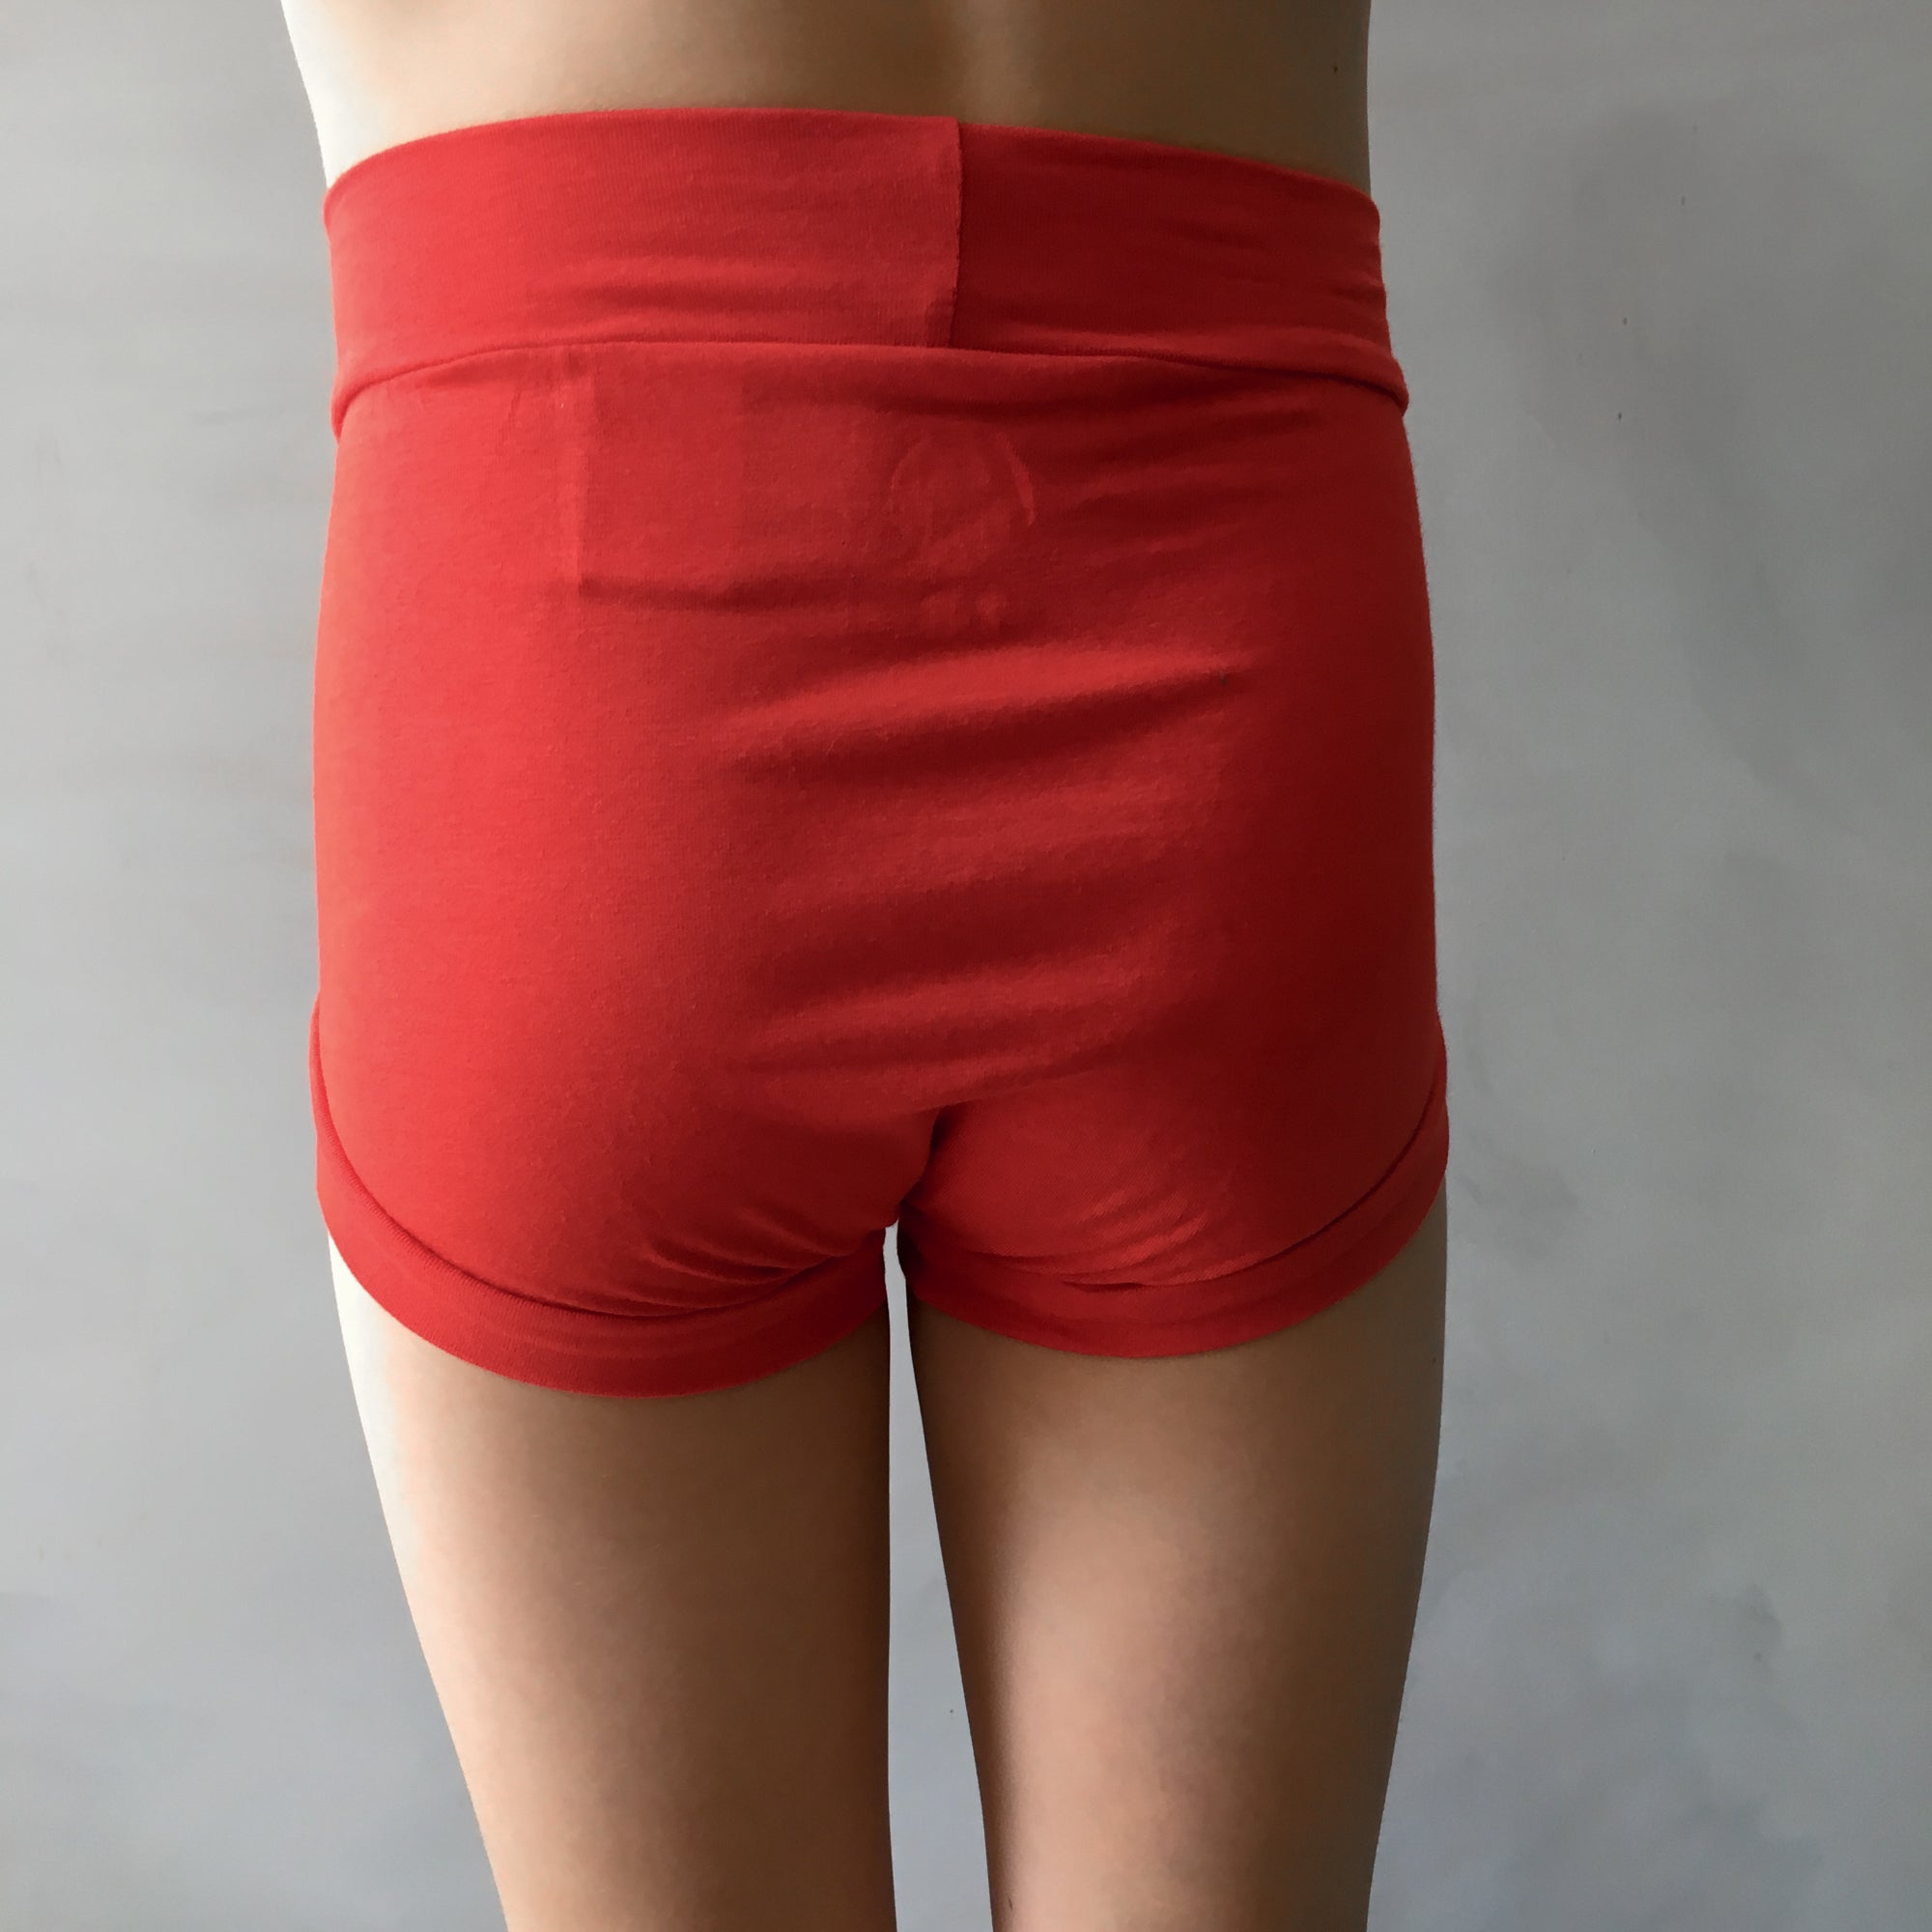 Boys Bamboo & Organic Cotton Underwear - Flame Red (size 2 only)